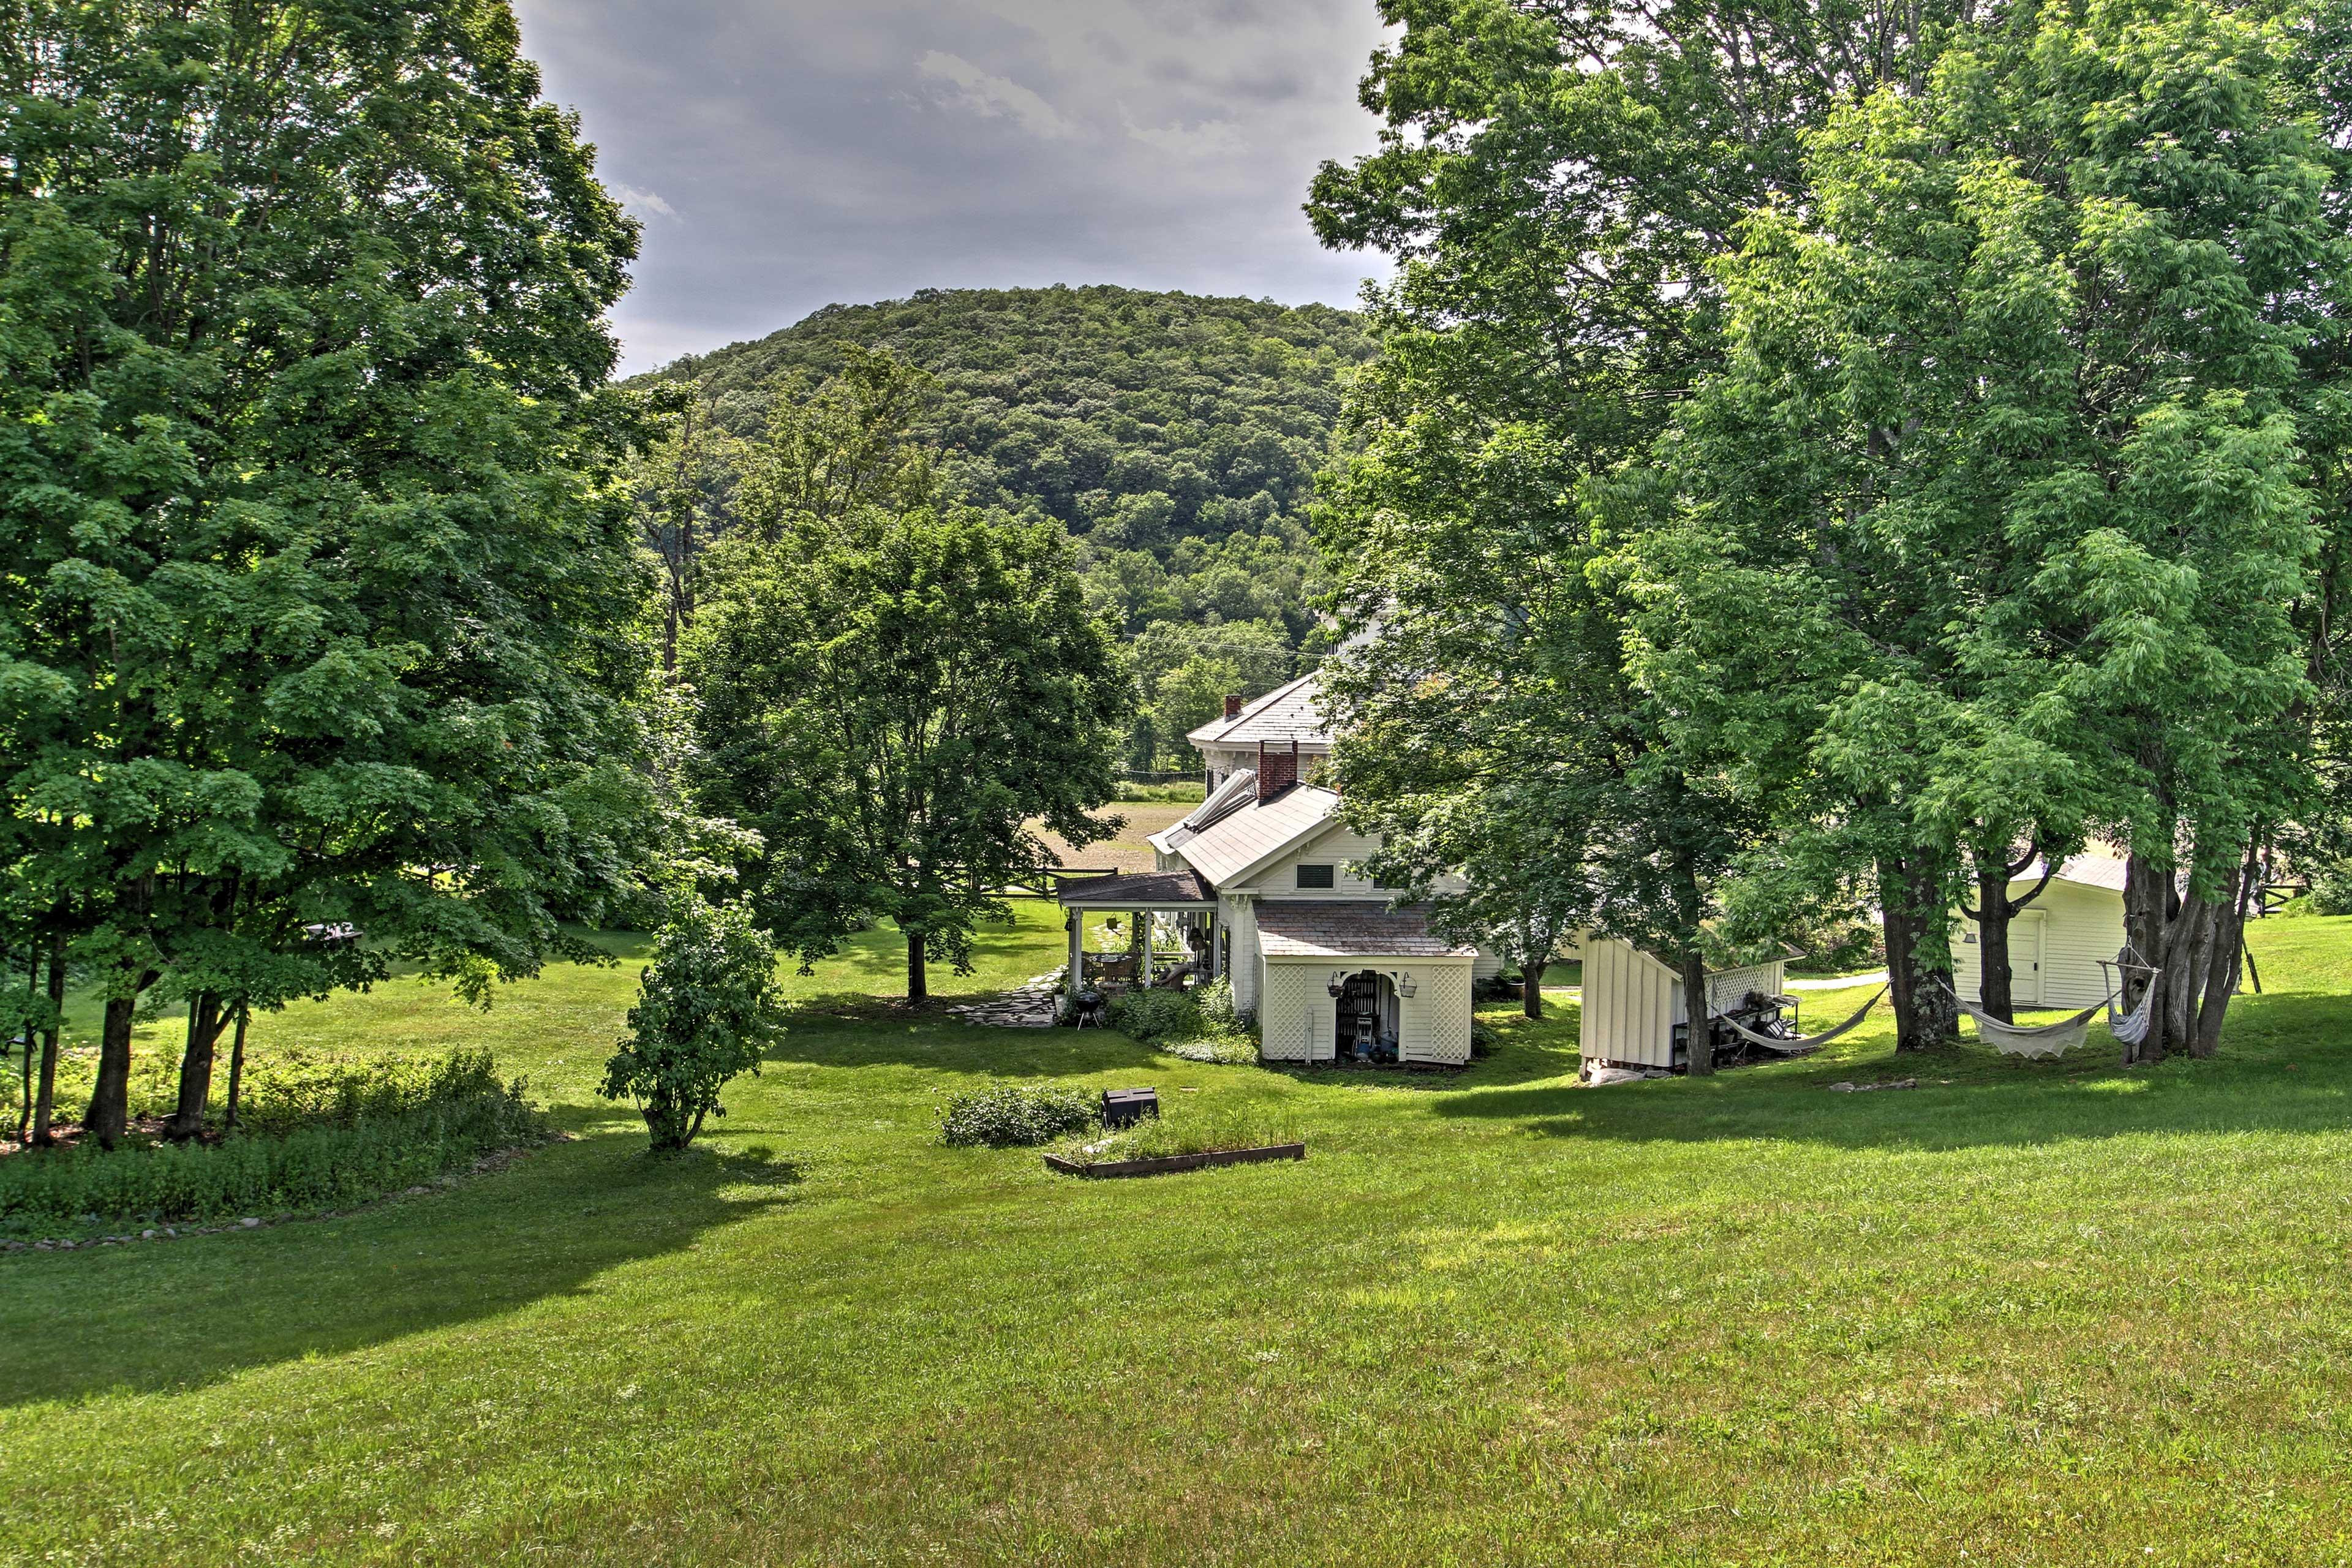 The home is situated on a large grassy lot offering pleasant vibrant views.